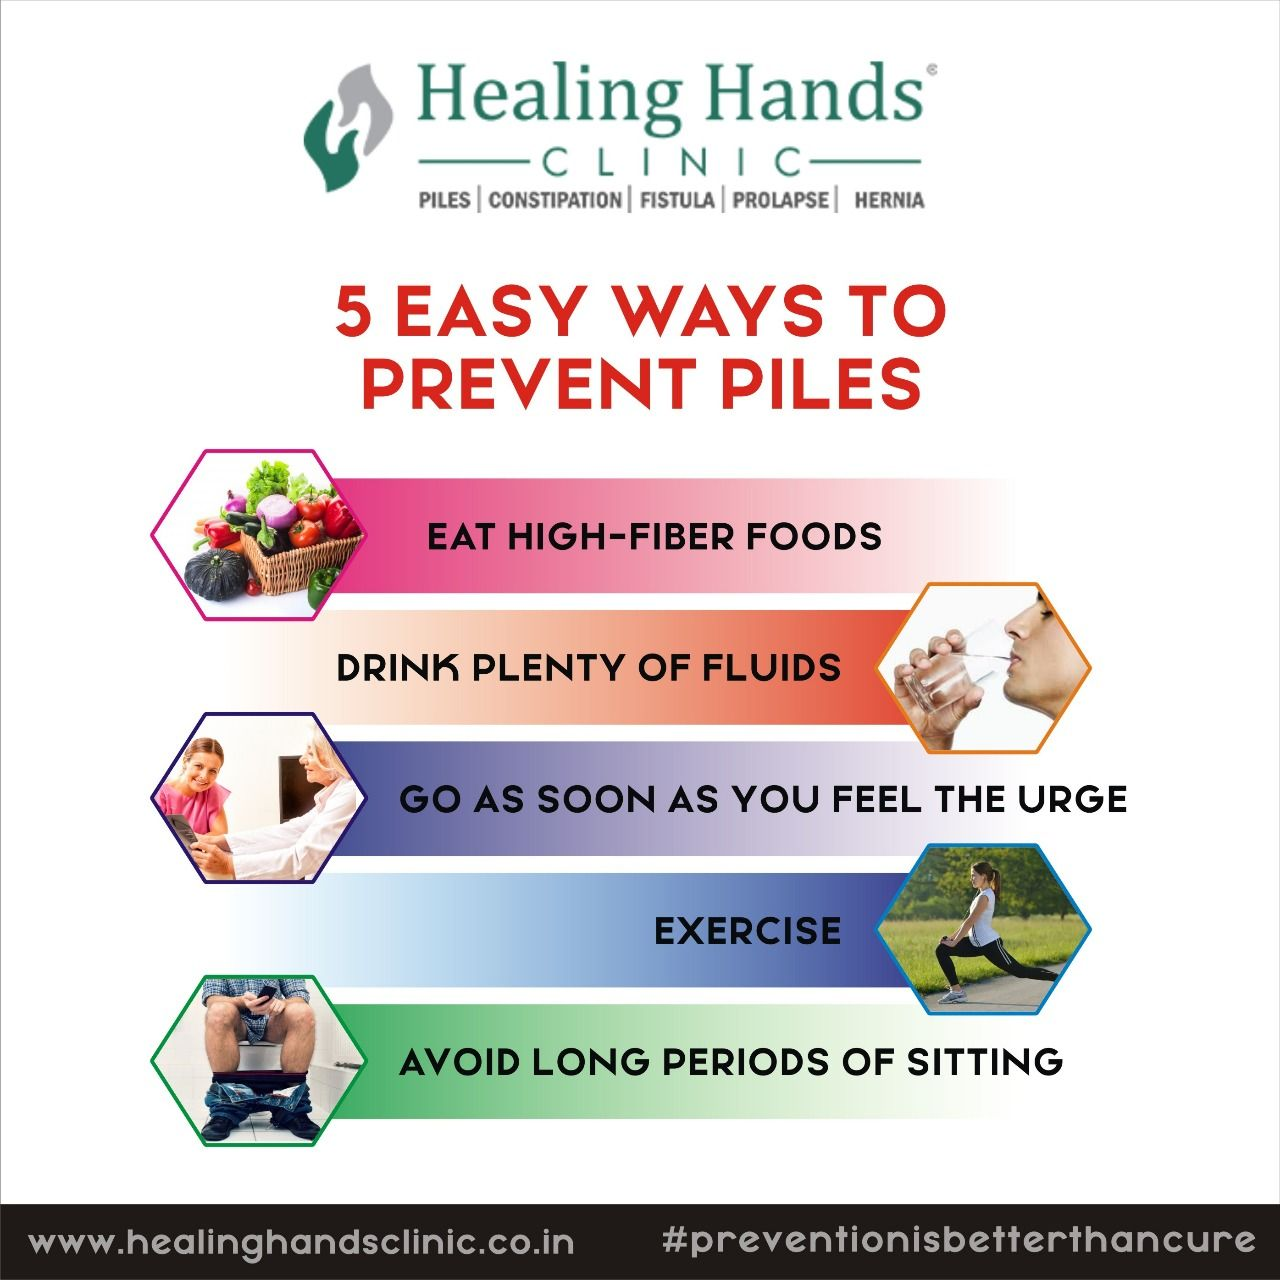 Follow the abovementioned prevention methods to live